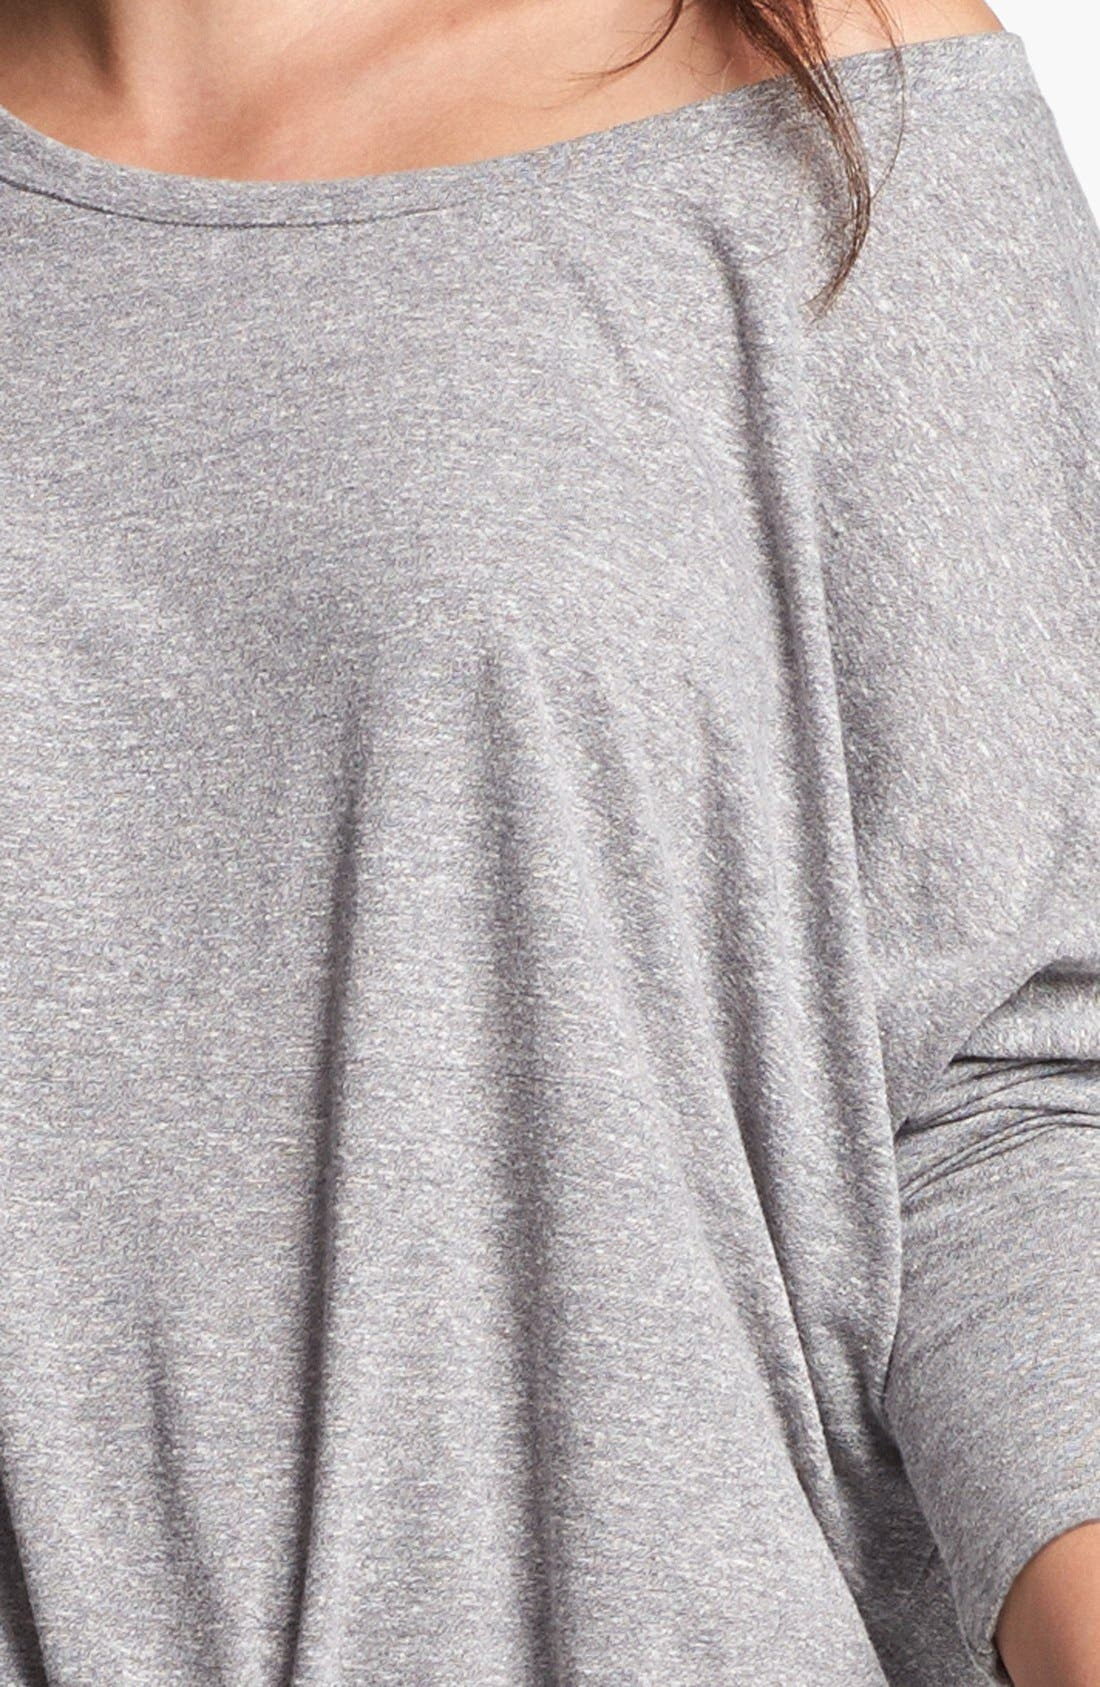 Heather Knit Slouchy Tee,                             Alternate thumbnail 3, color,                             GREY HEATHER